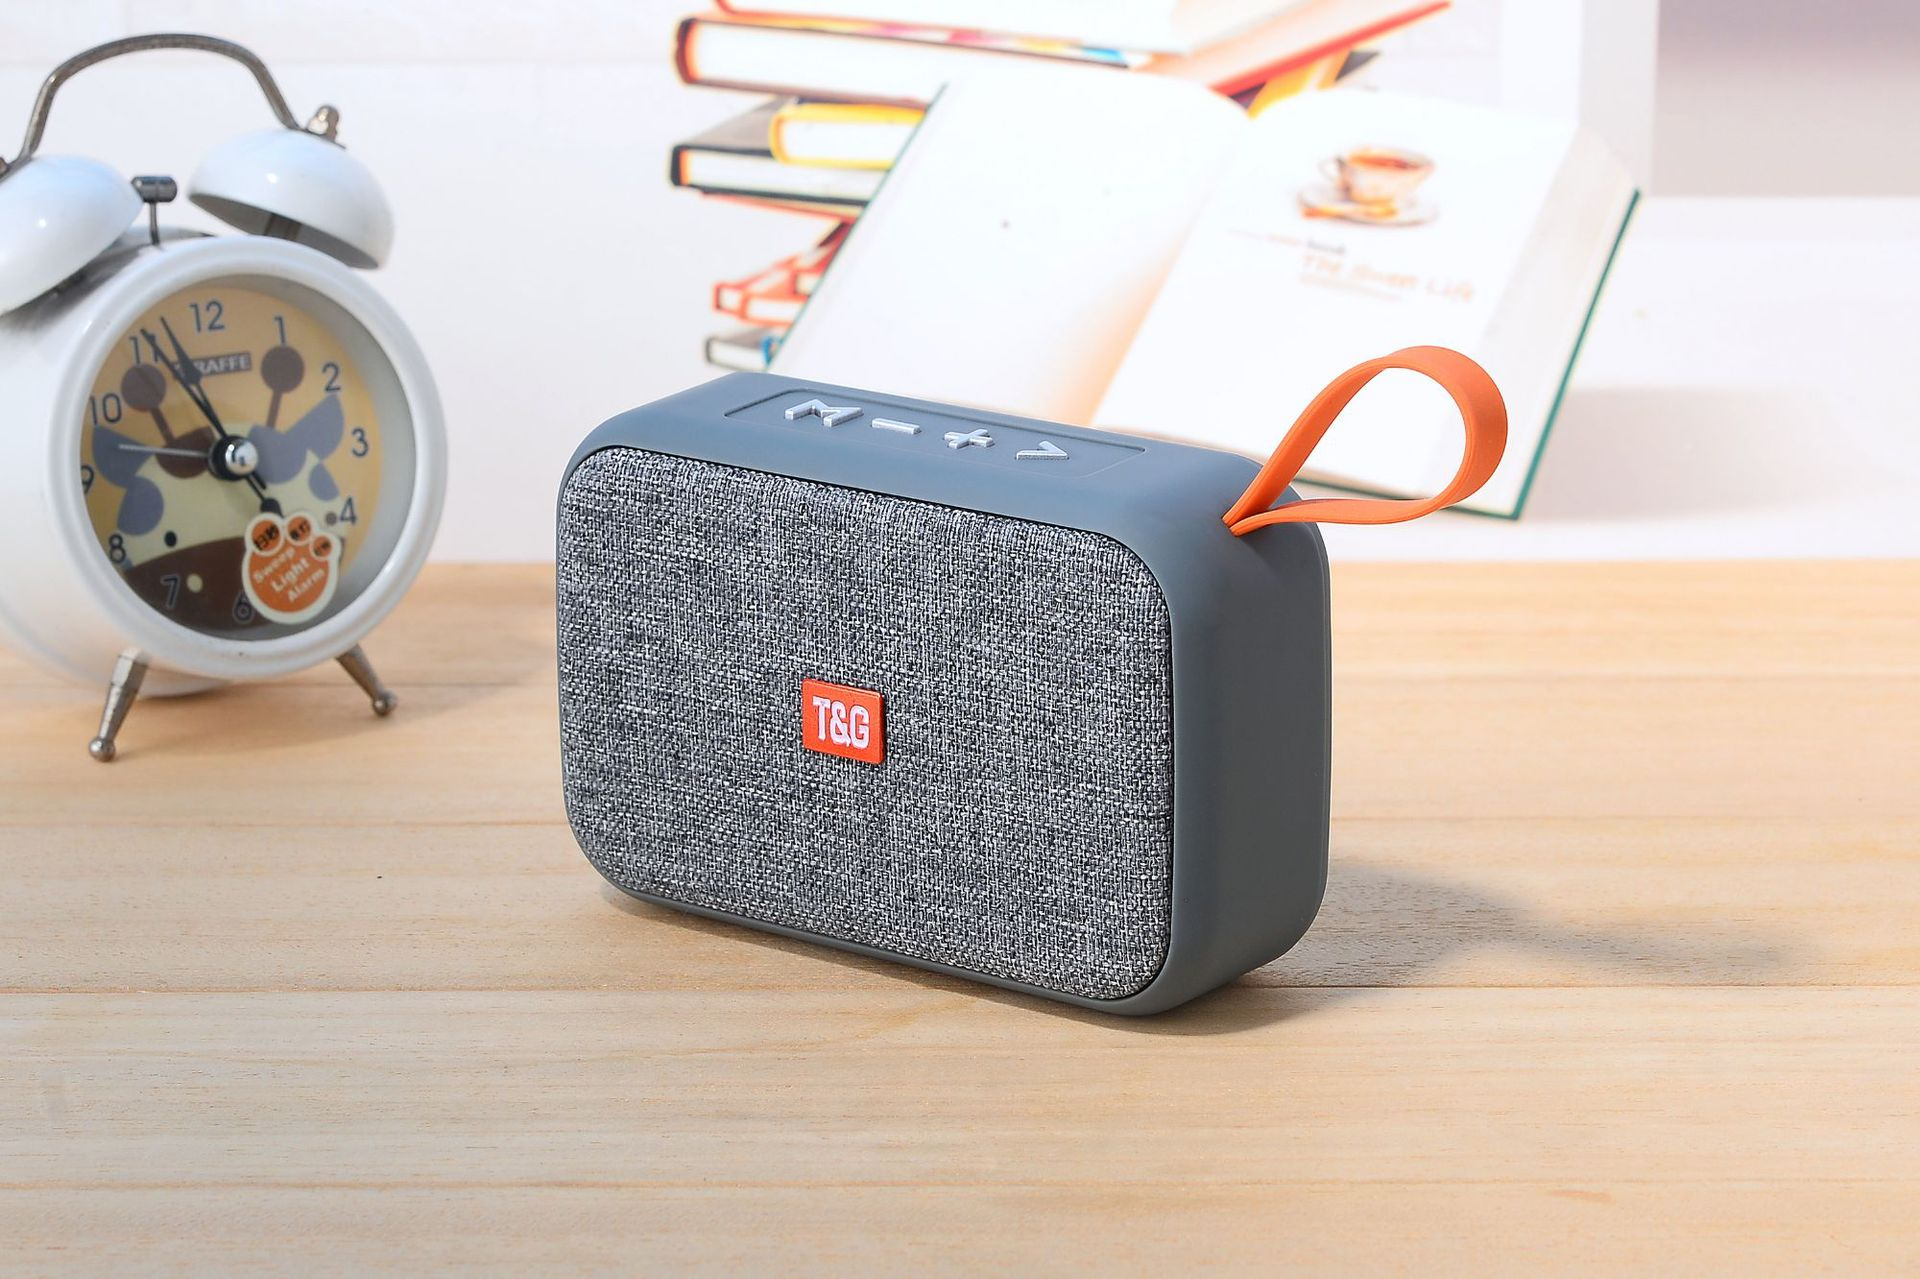 2019 Speakers Wireless Bluetooth Speakers Portable Card SoundBox Disk Fabric Portable Wireless Gift Mini Mini Audio With Package From Garenzuo, $20.11